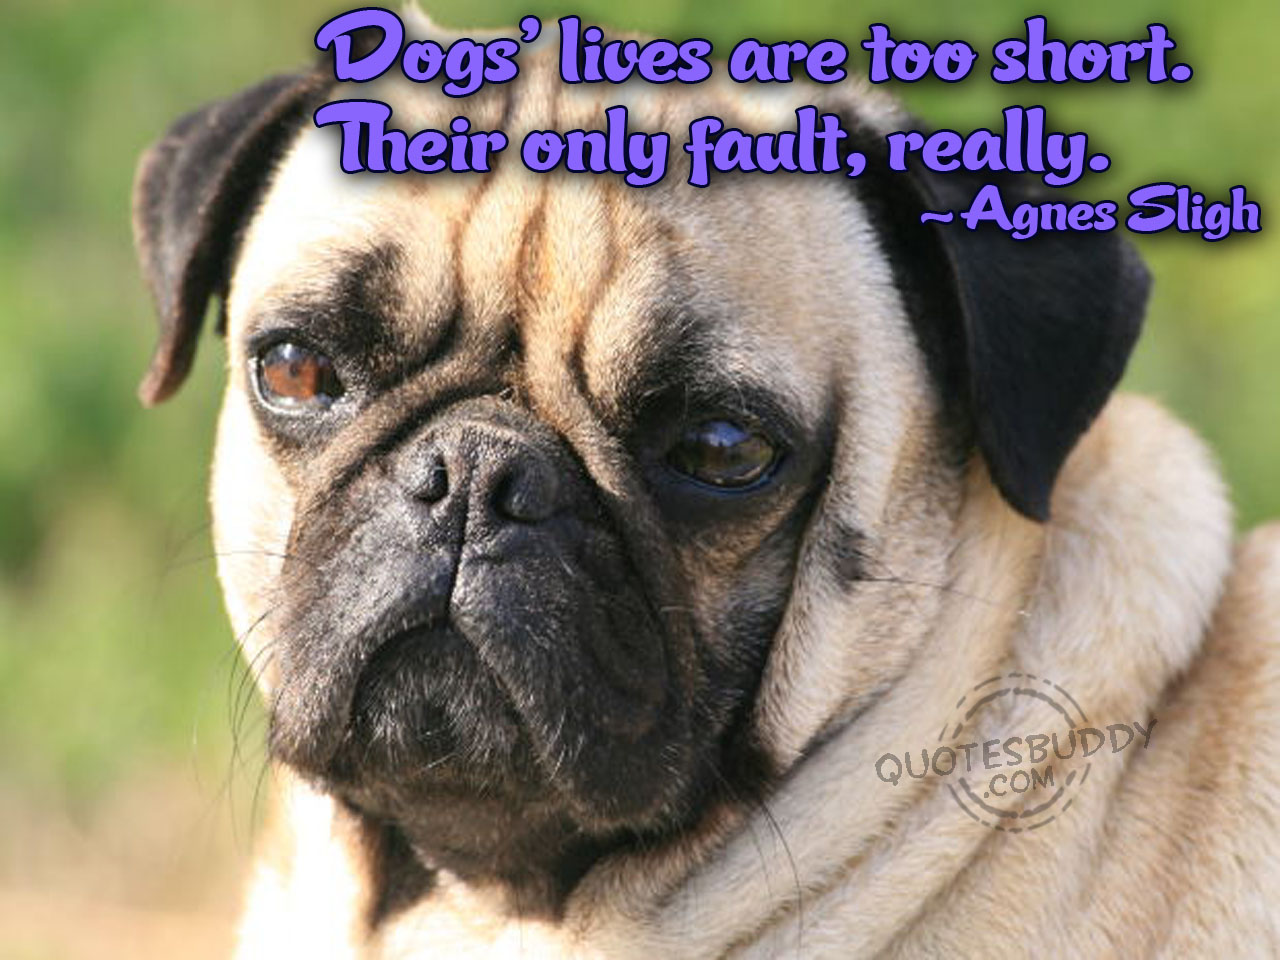 Funny Dog Quotes and Sayings